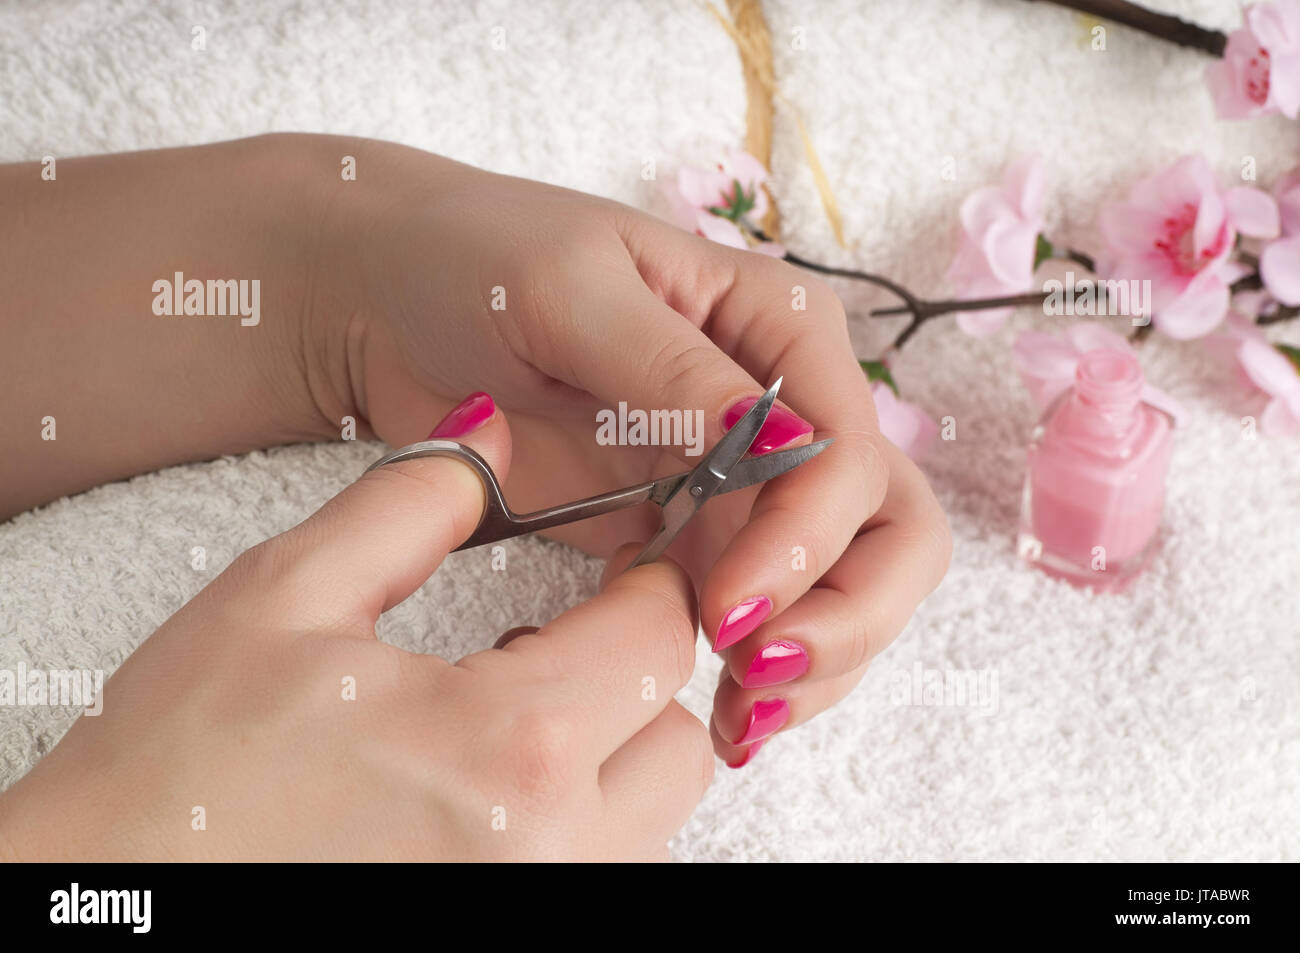 Close up view of nail treatment - Stock Image